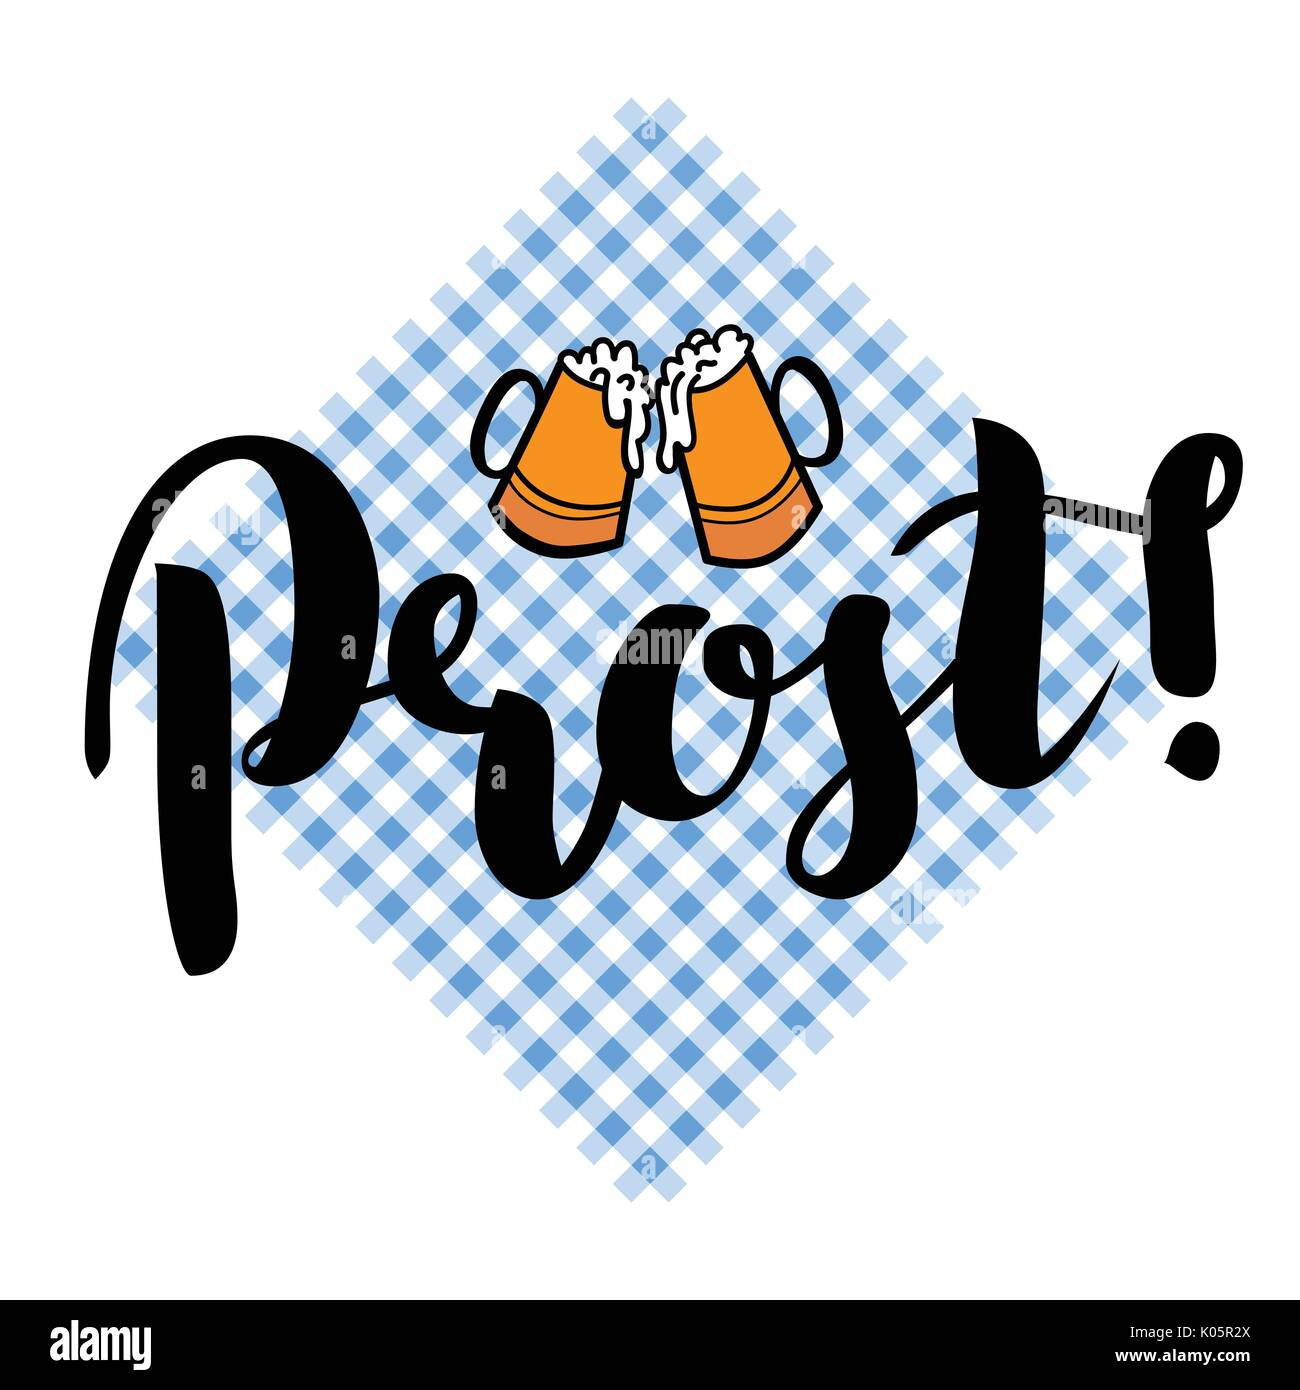 Traditional German Oktoberfest bier festival with text Prost Cheers and two biers. Vector lettering illustration isolated on white - Stock Image